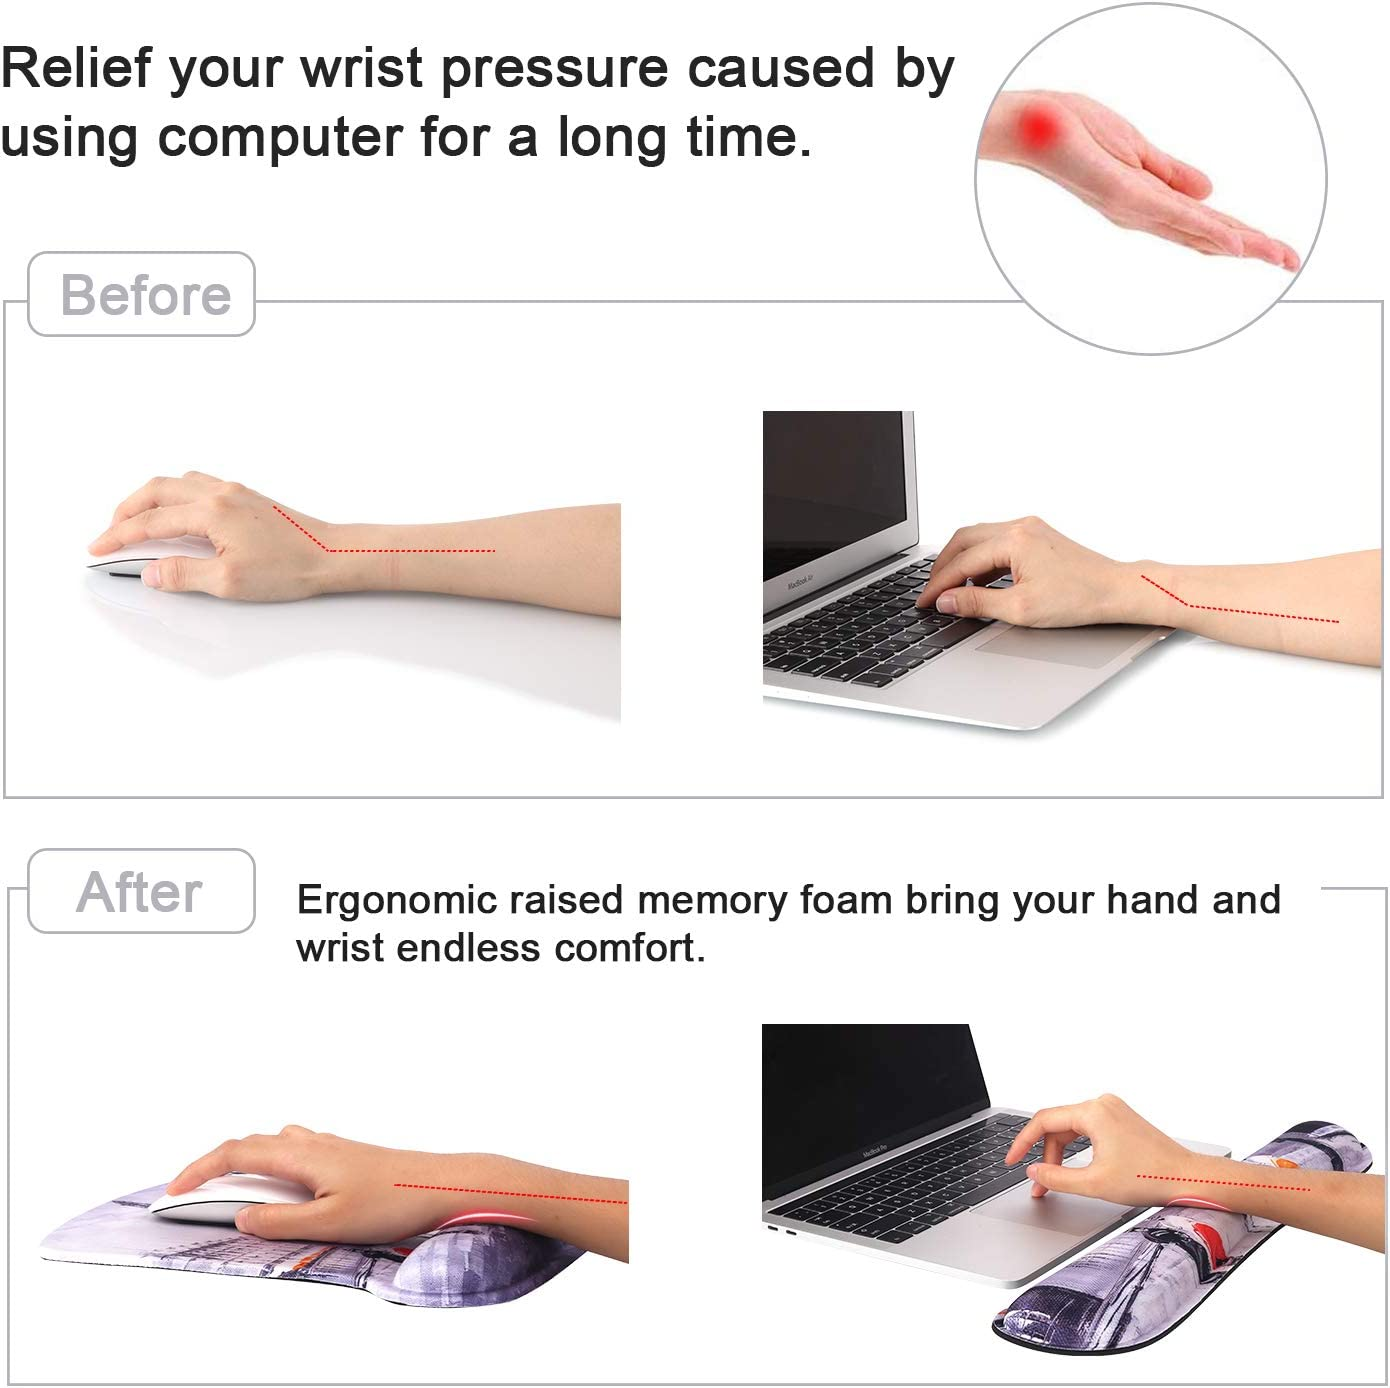 iCasso Mouse Pad Ergonomic Mousepad with Gel Wrist Rest Support Sloth Durable /& Comfortable Non-Slip Gaming Mouse Mat Wrist for Laptop Computer Home Office Easy Typing /& Pain Relief